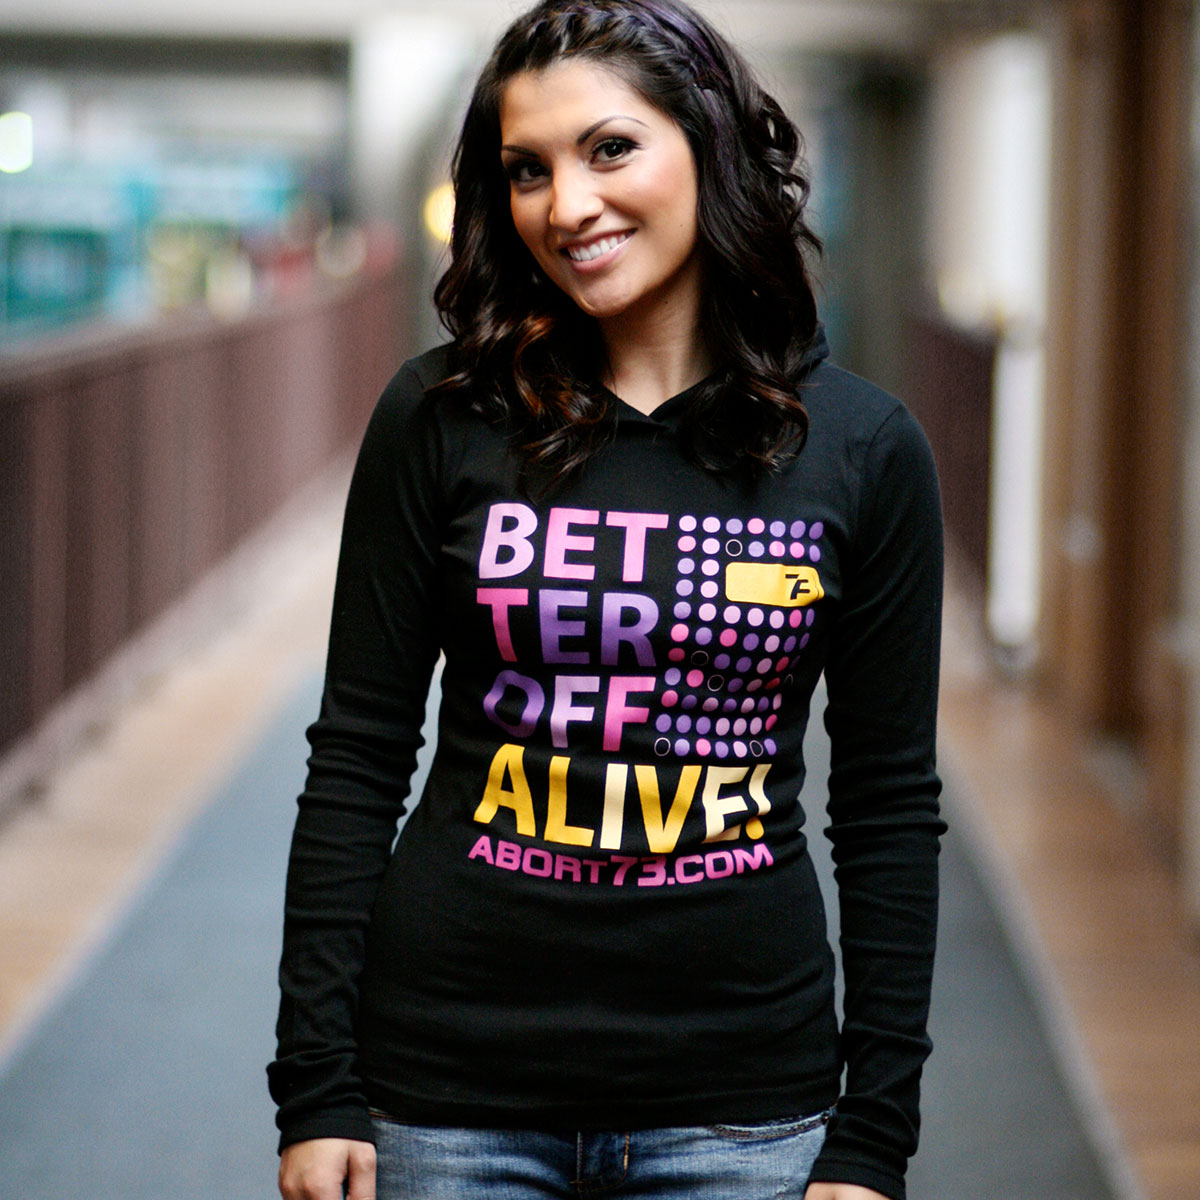 Better Off Alive (Abort73 Girls Longsleeve Hoody)